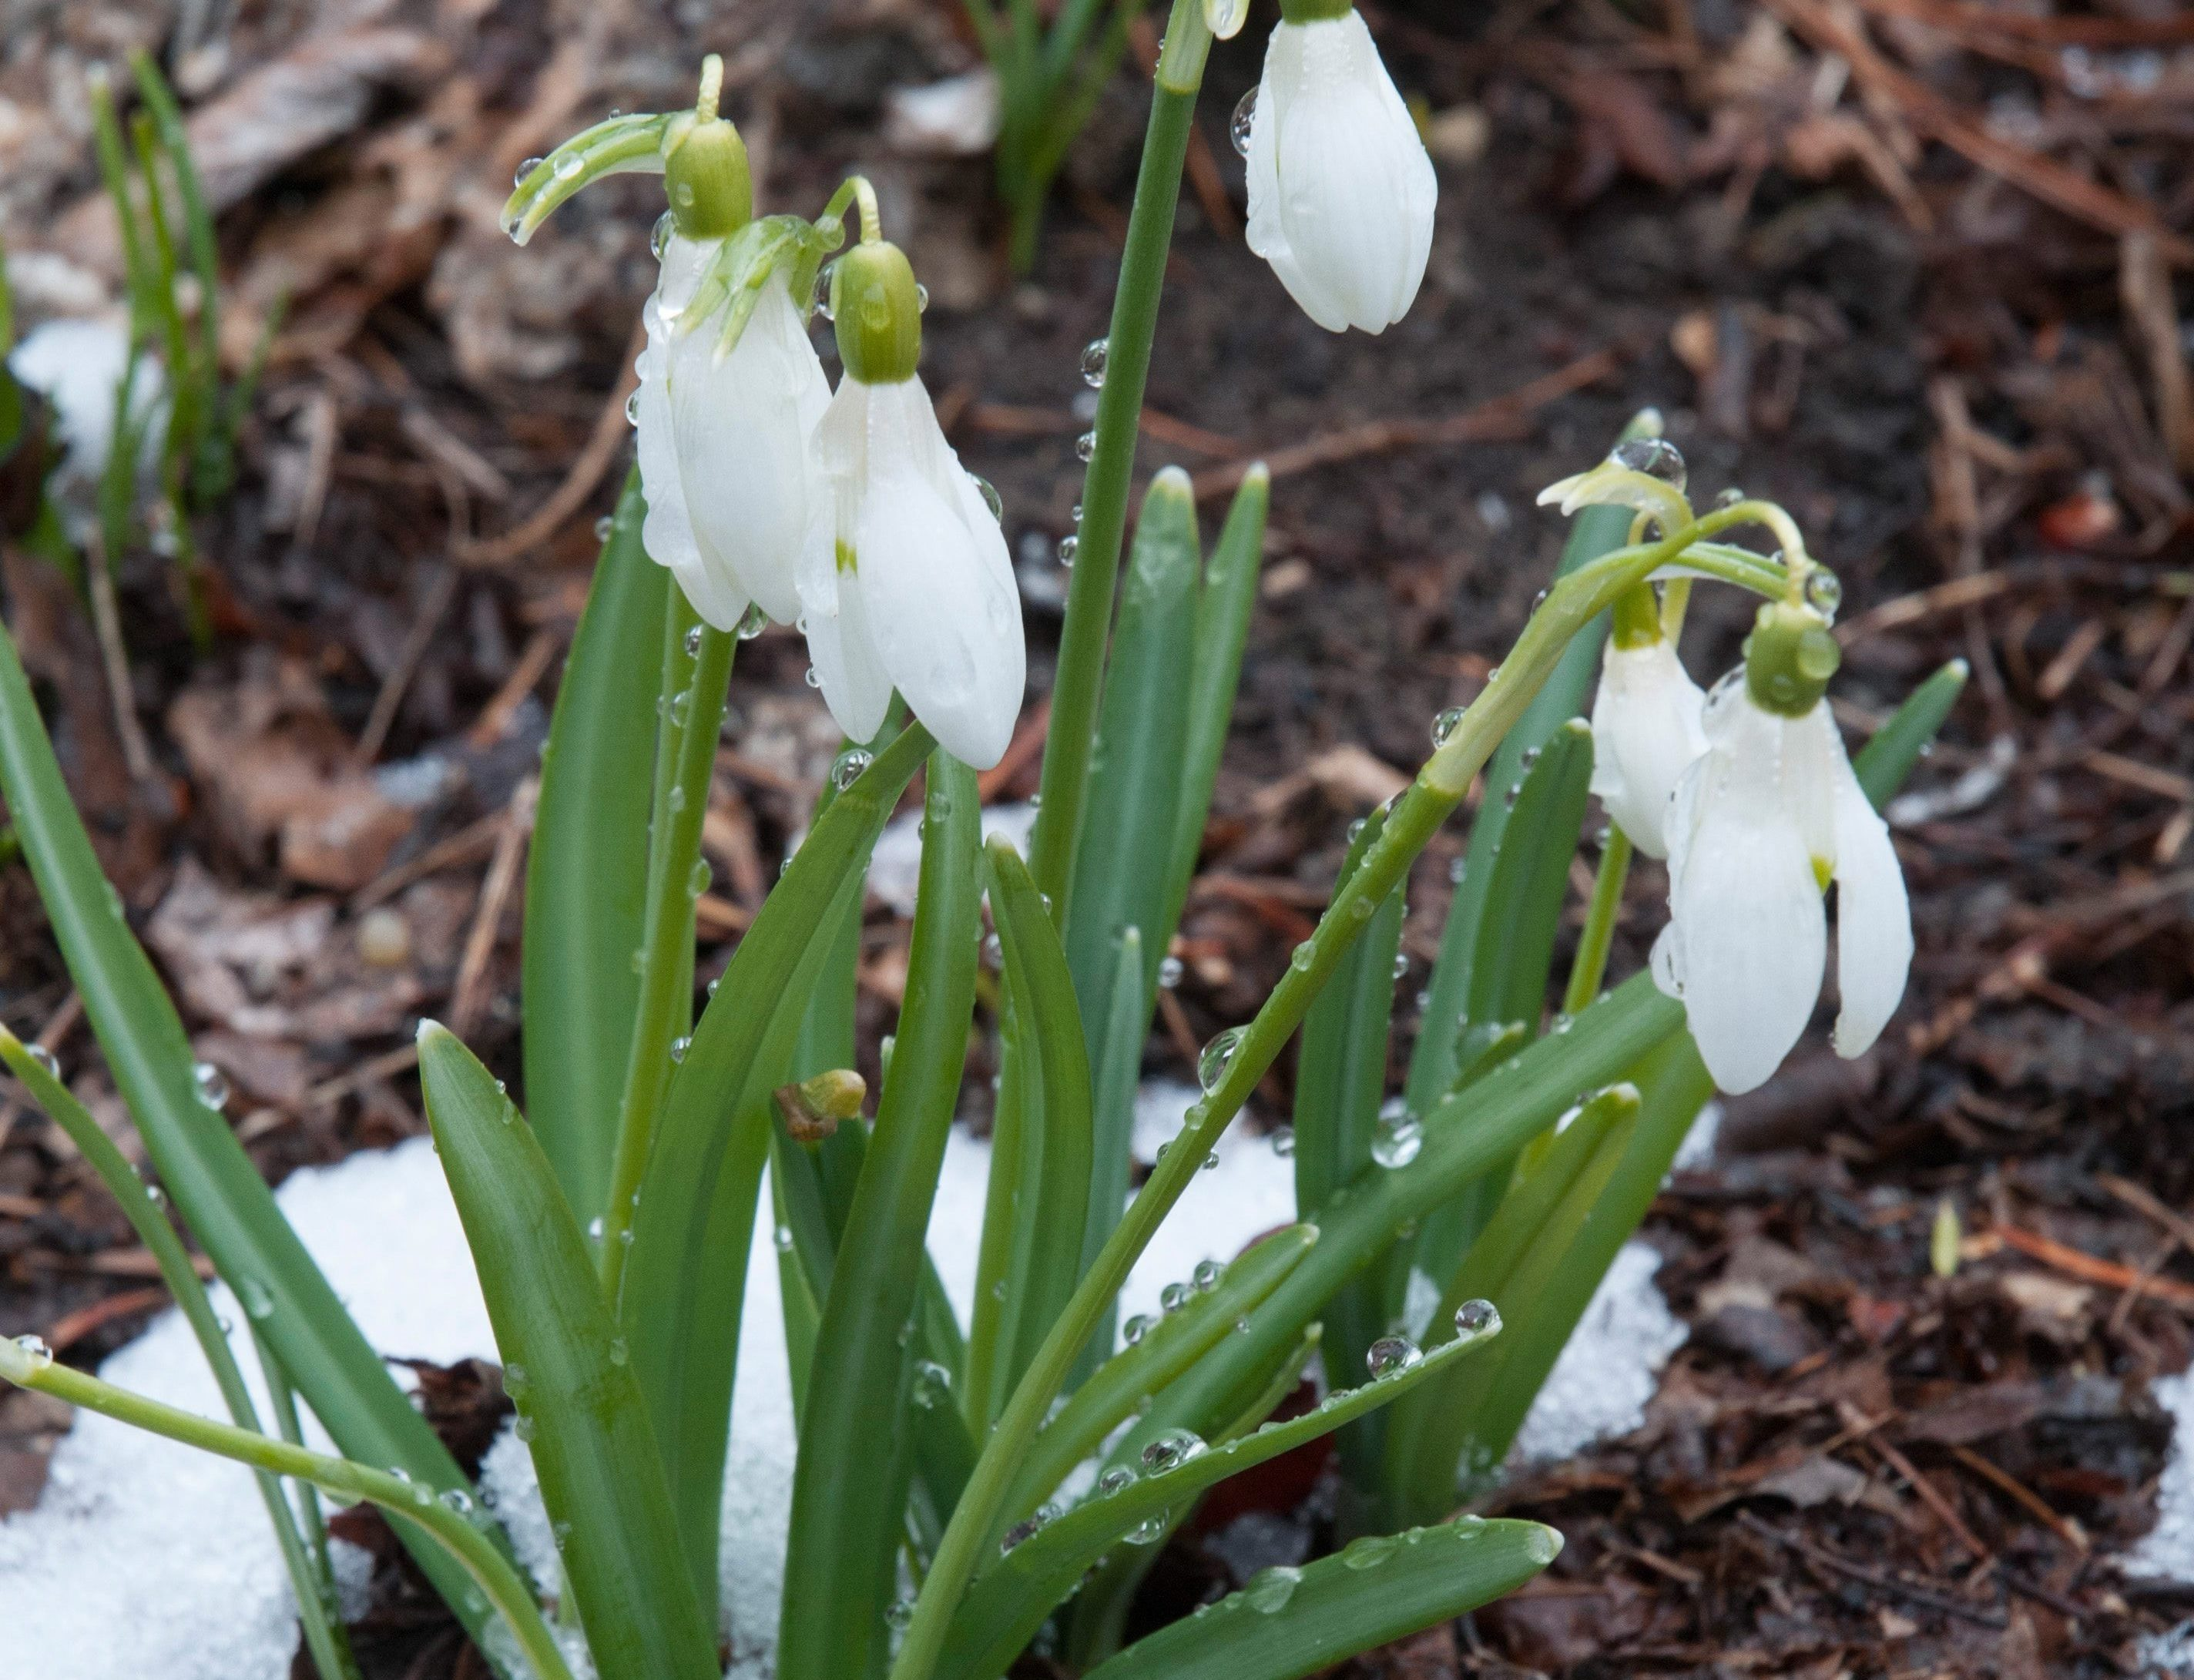 March is a popular month for area garden clubs to install new officers. It's also the month to think spring. Above: Snowdrops are among the first flowers to bloom. Photo courtesy Colorblends.com.